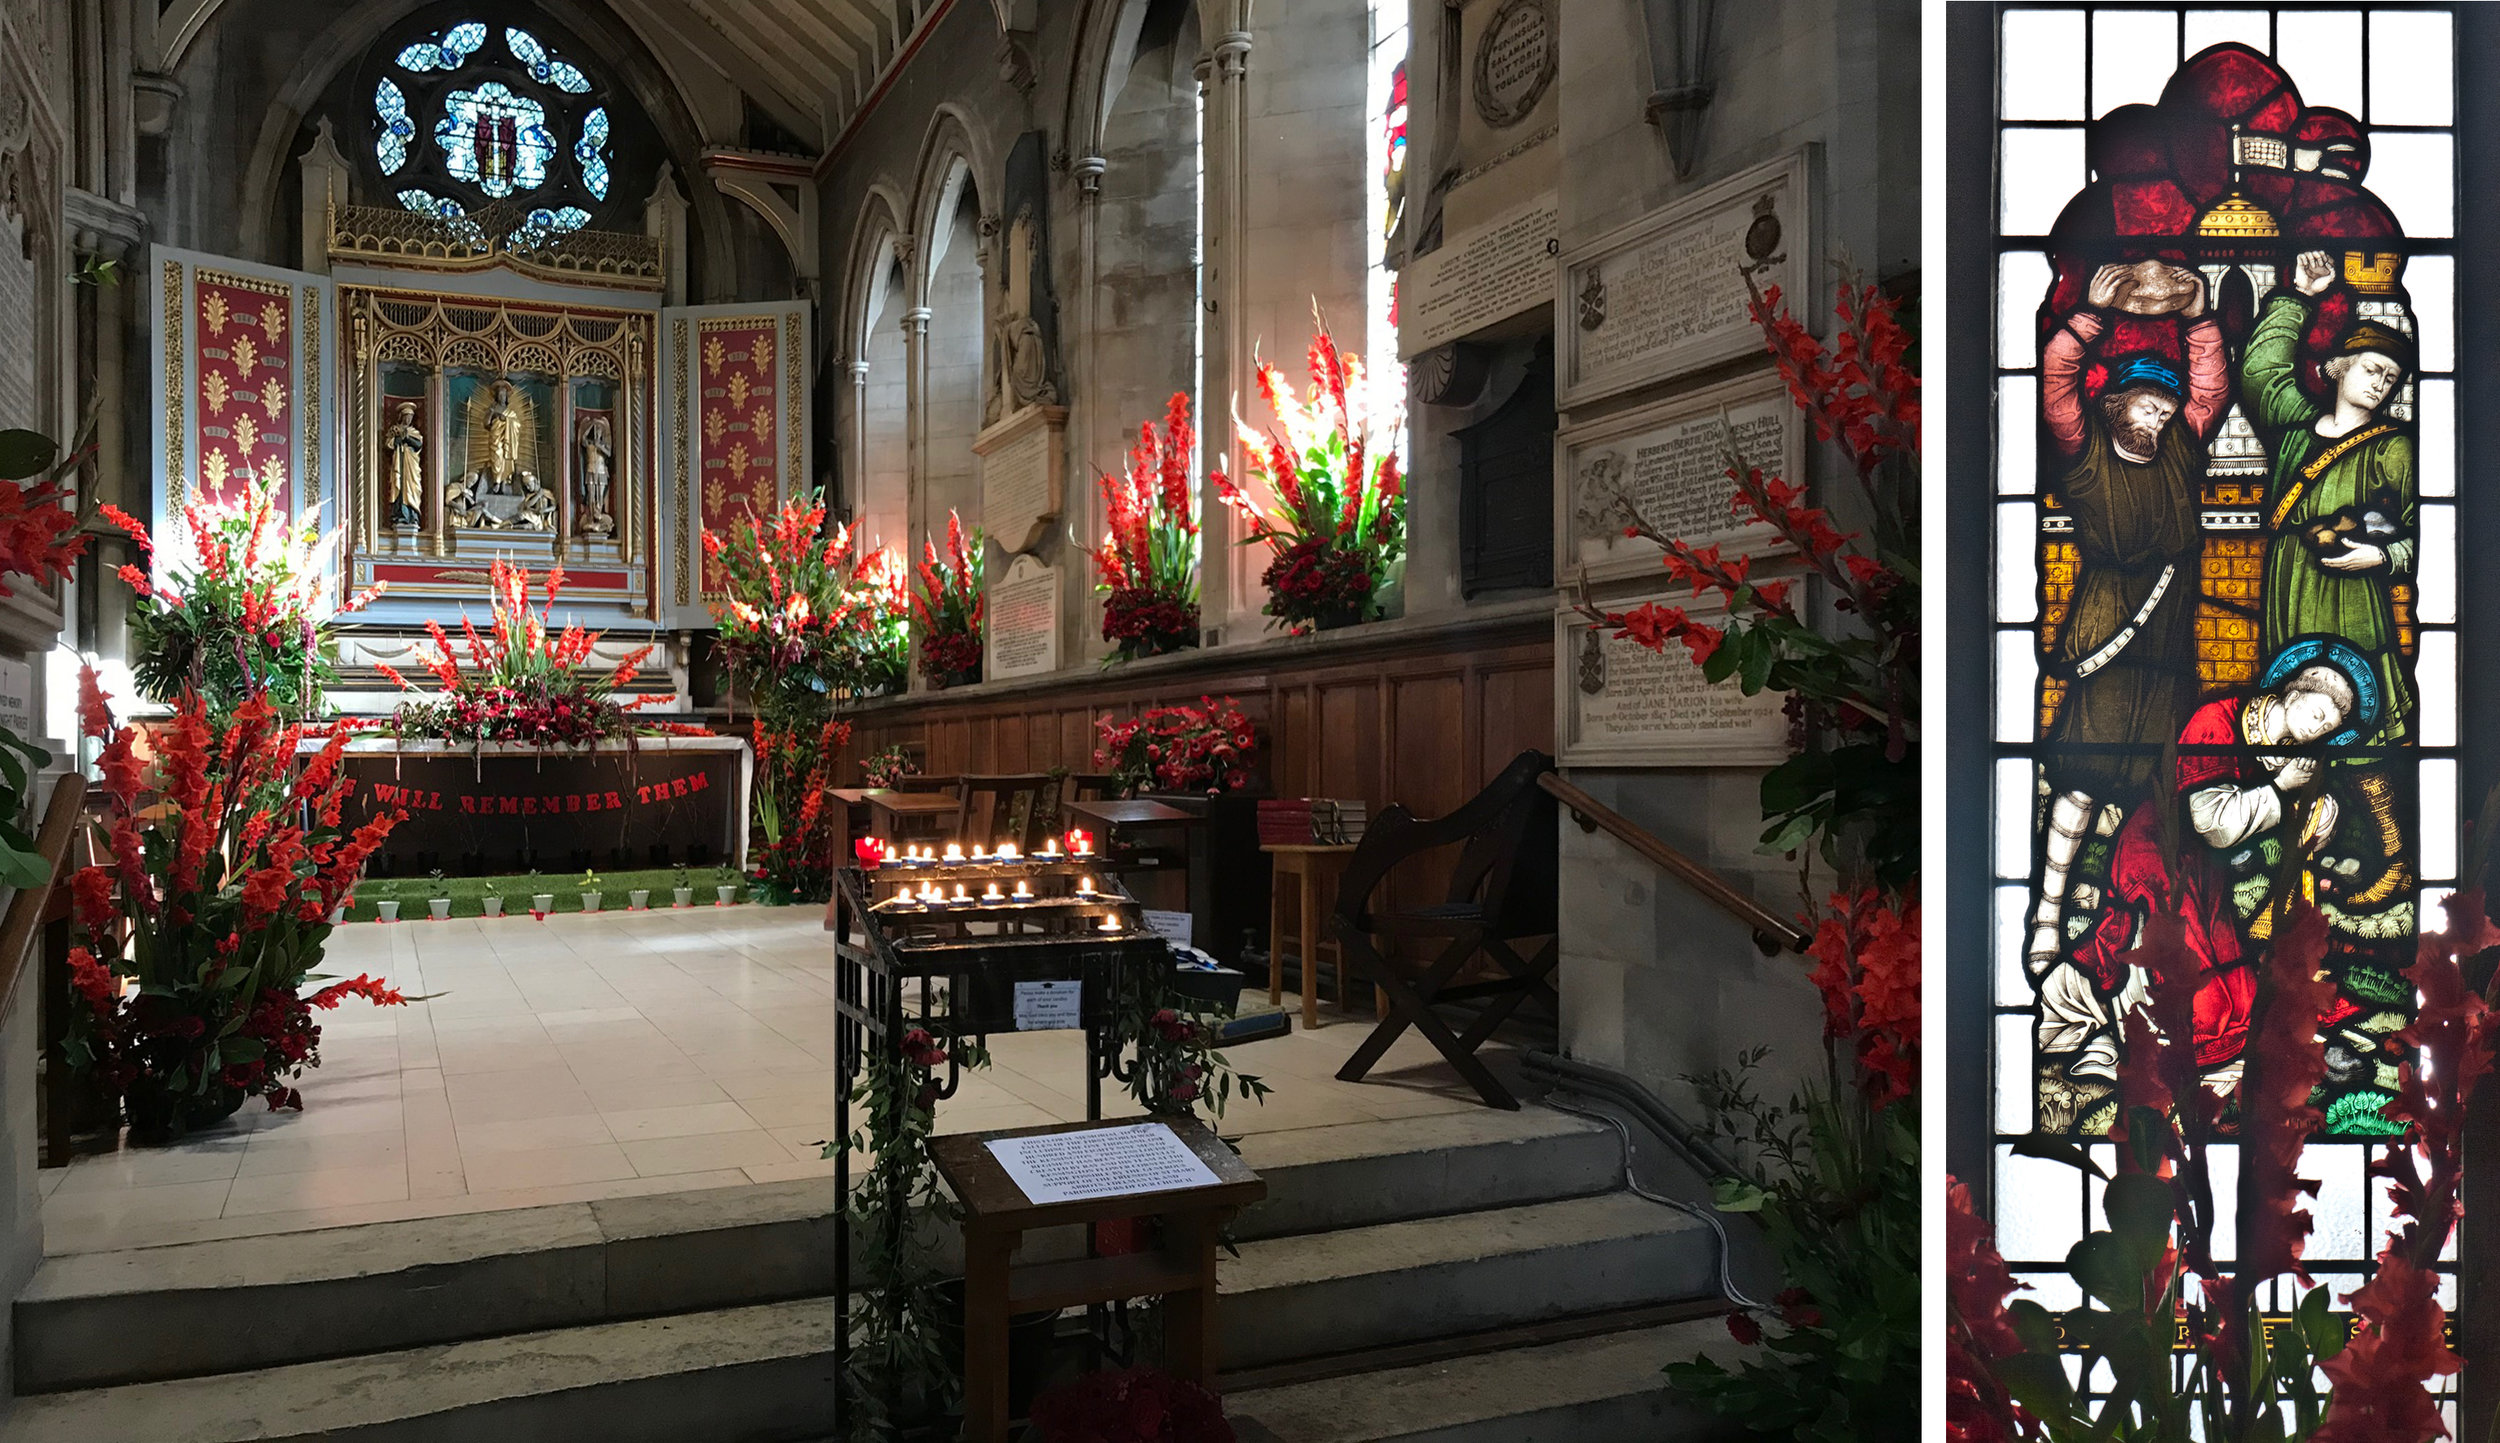 Left: The Resurrection Chapel. Right: Gladioli and Stephen stoned by Clayton & Bell (1870s)